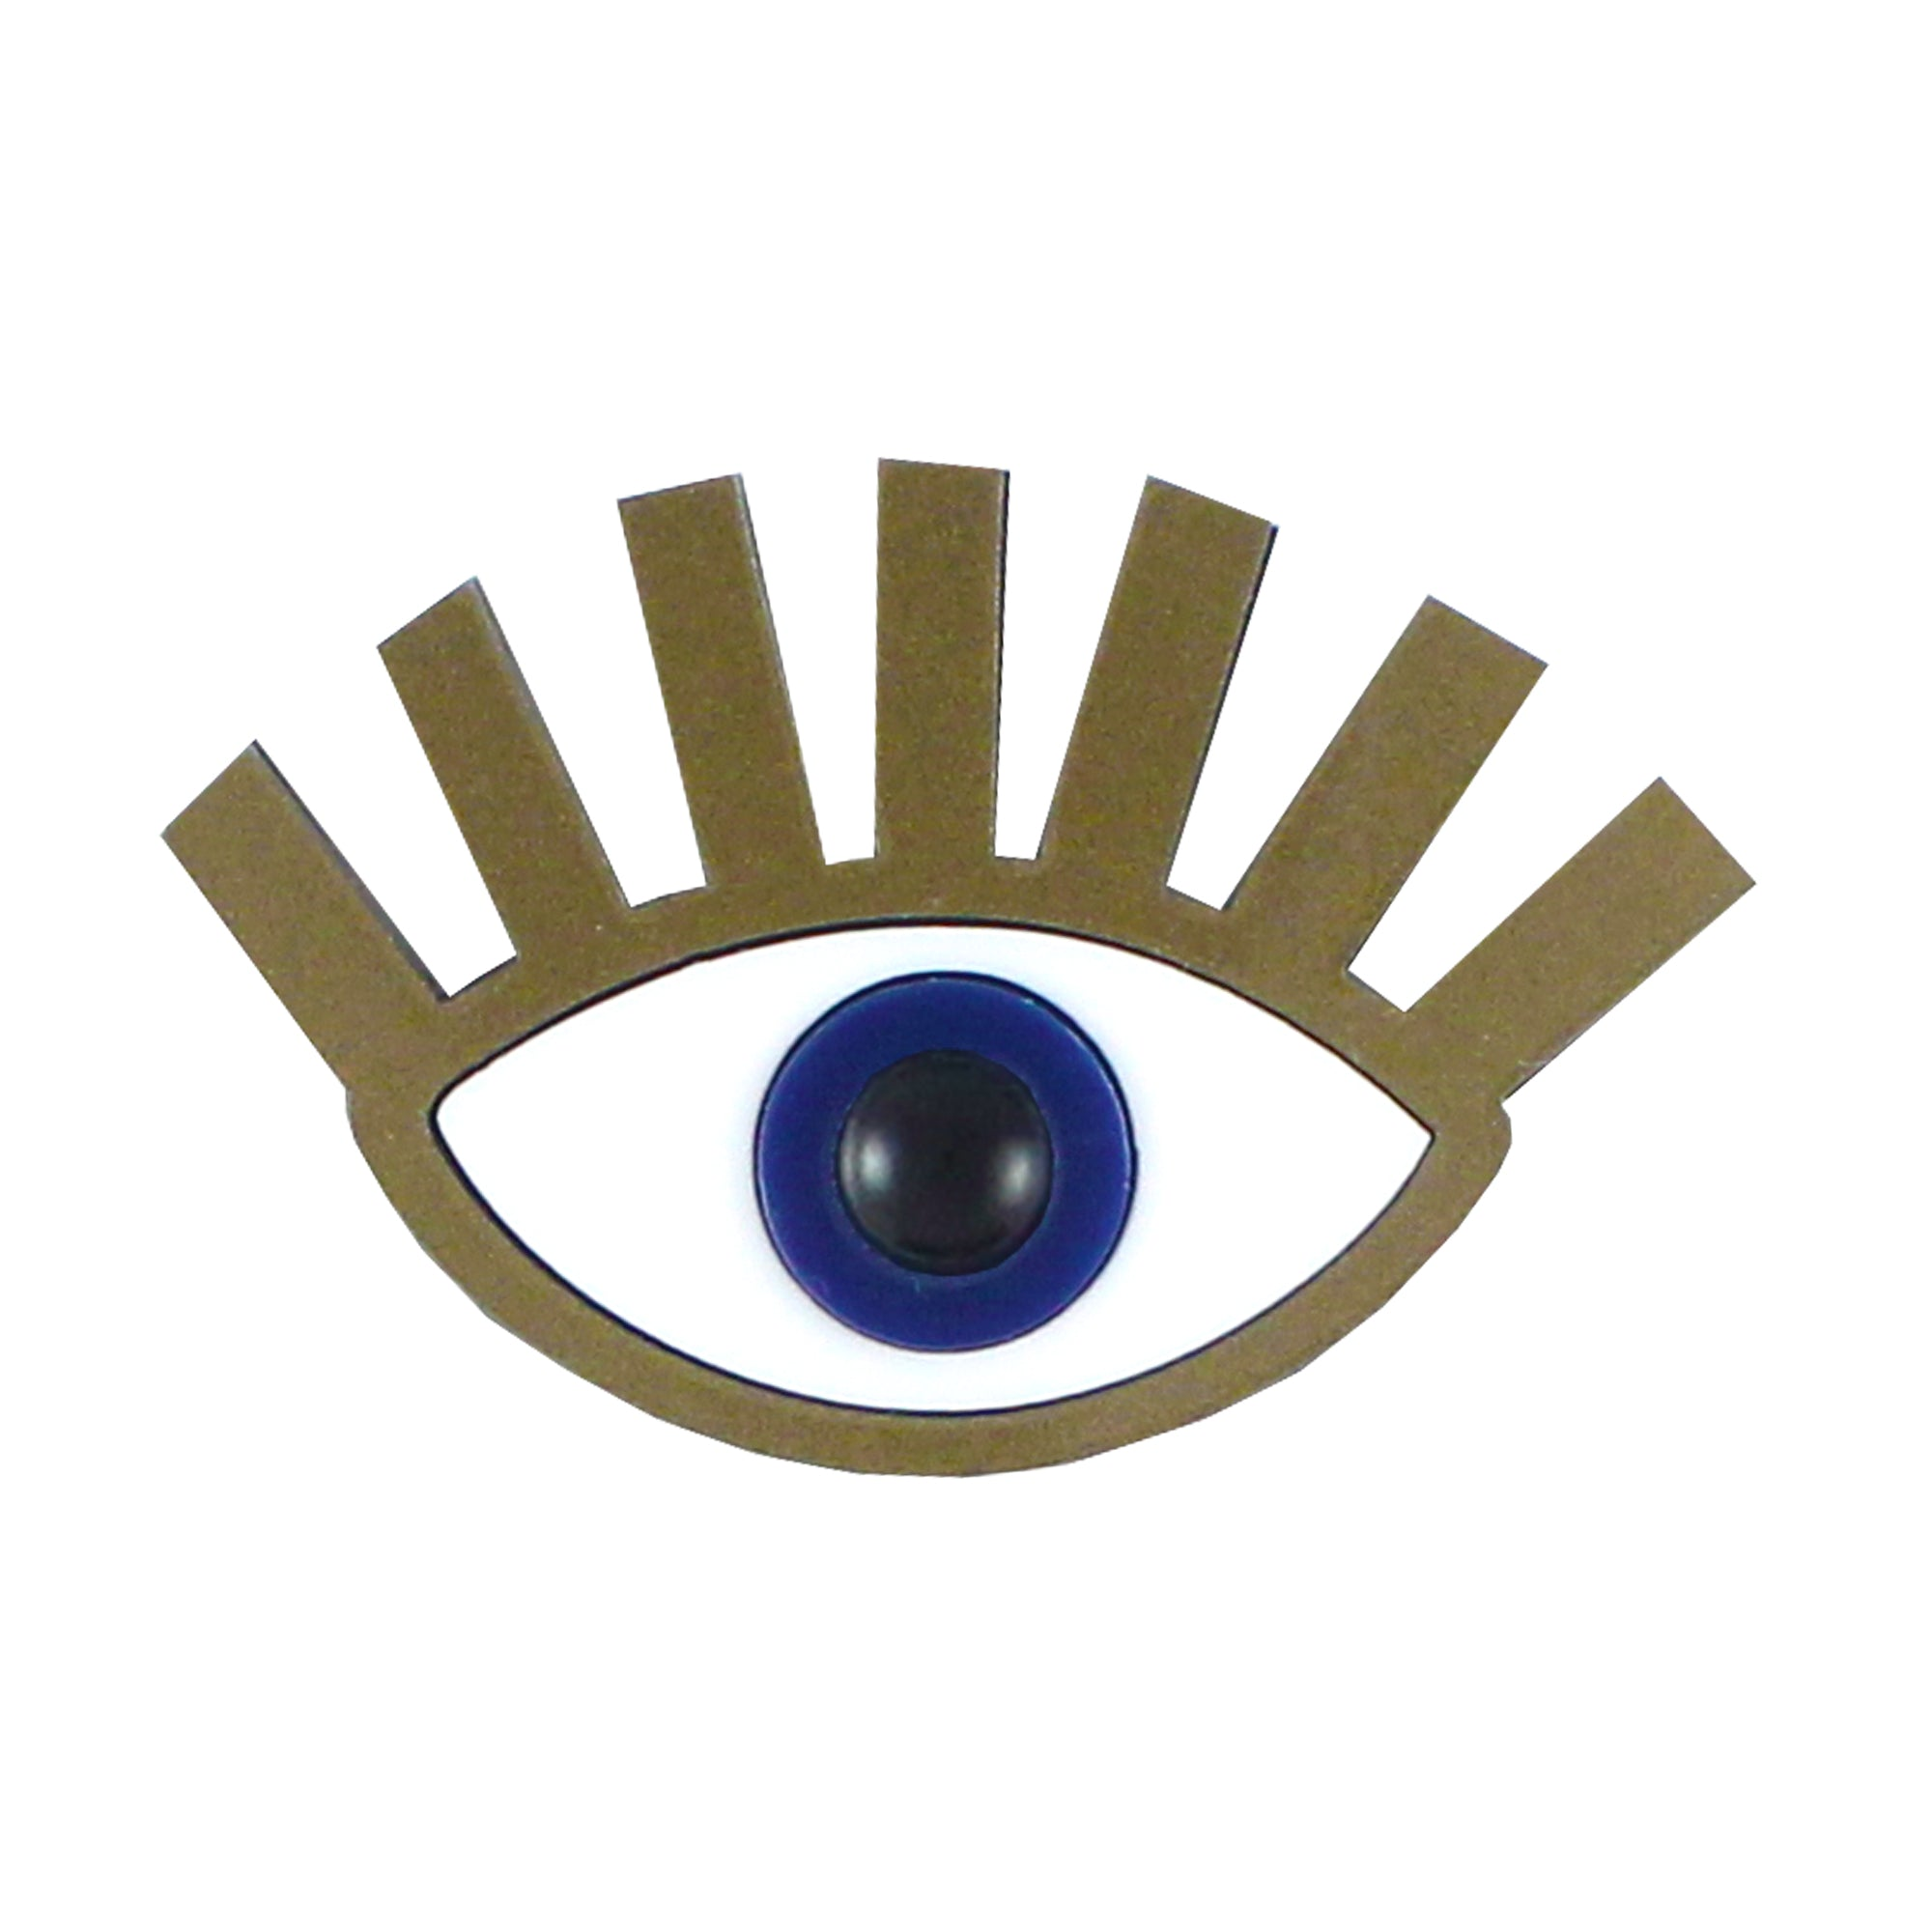 Ursula Eye Brooch